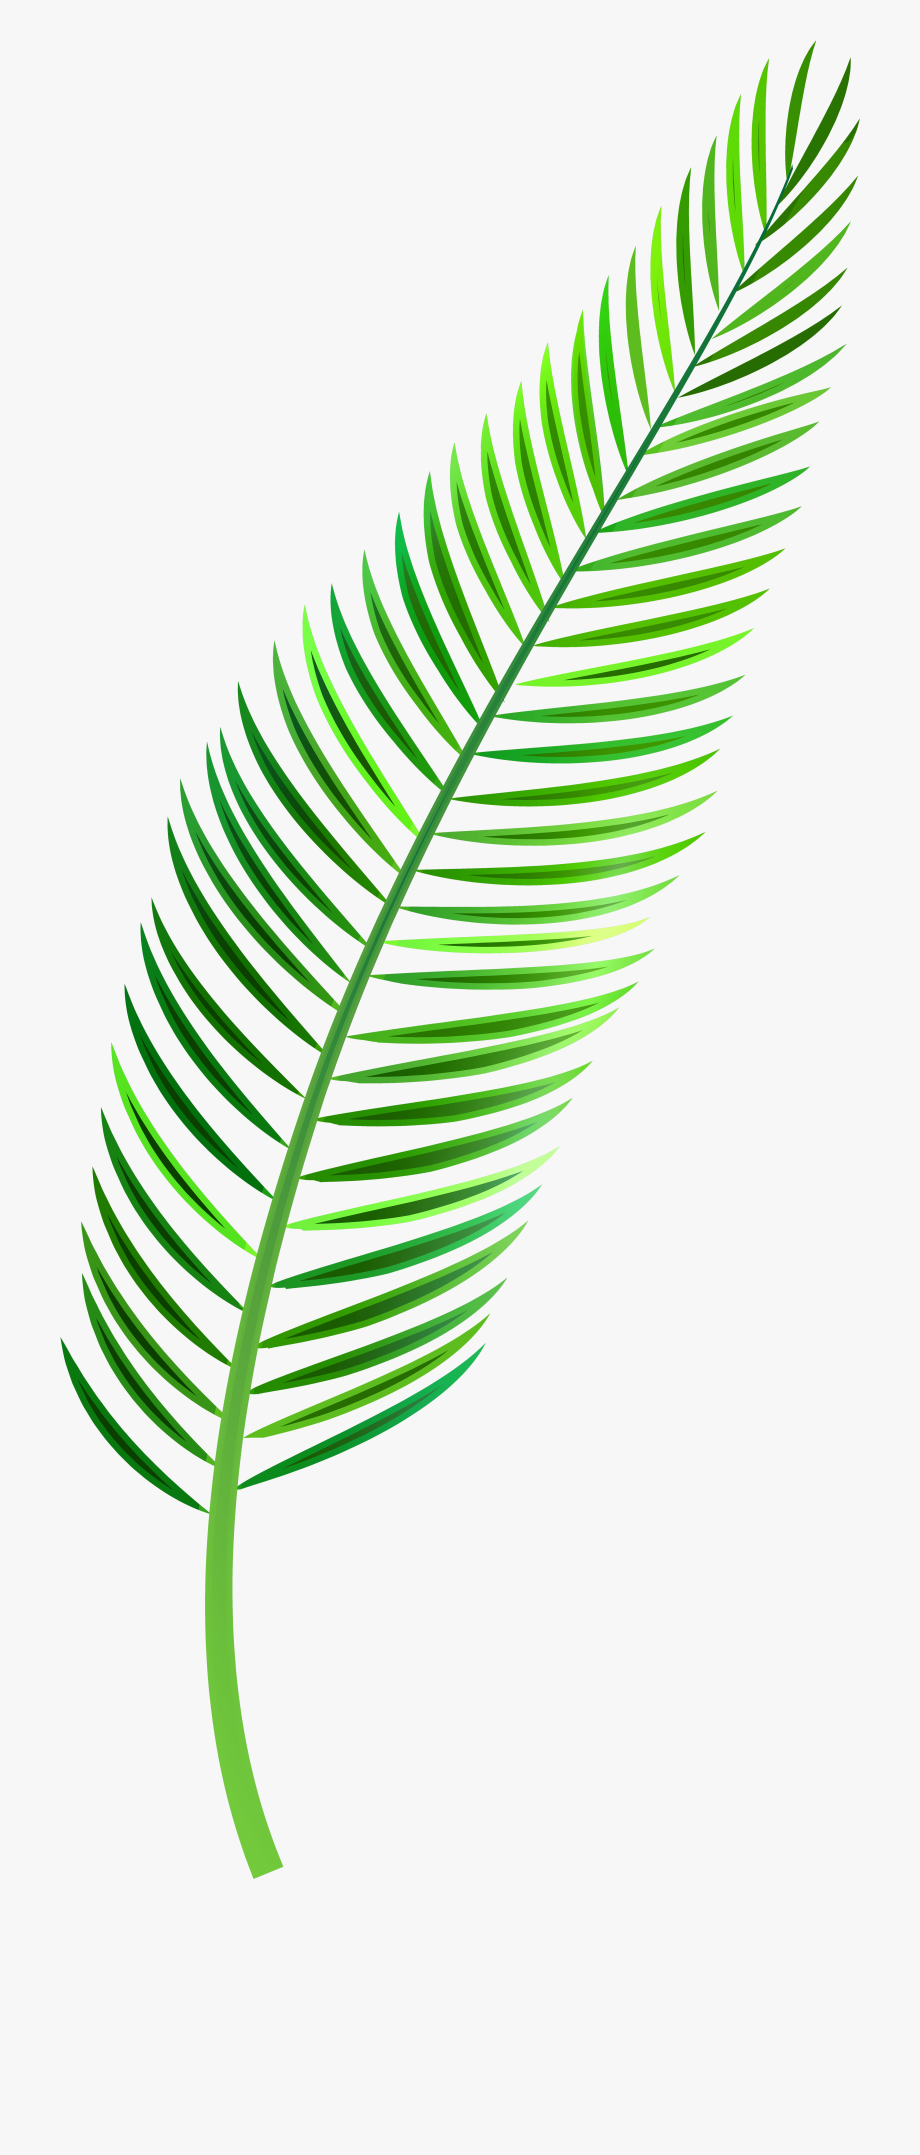 Palm fronds clipart png picture freeuse Palm Leaf Png Clip Art - Tropical Leaf Watercolor Png #8559 ... picture freeuse